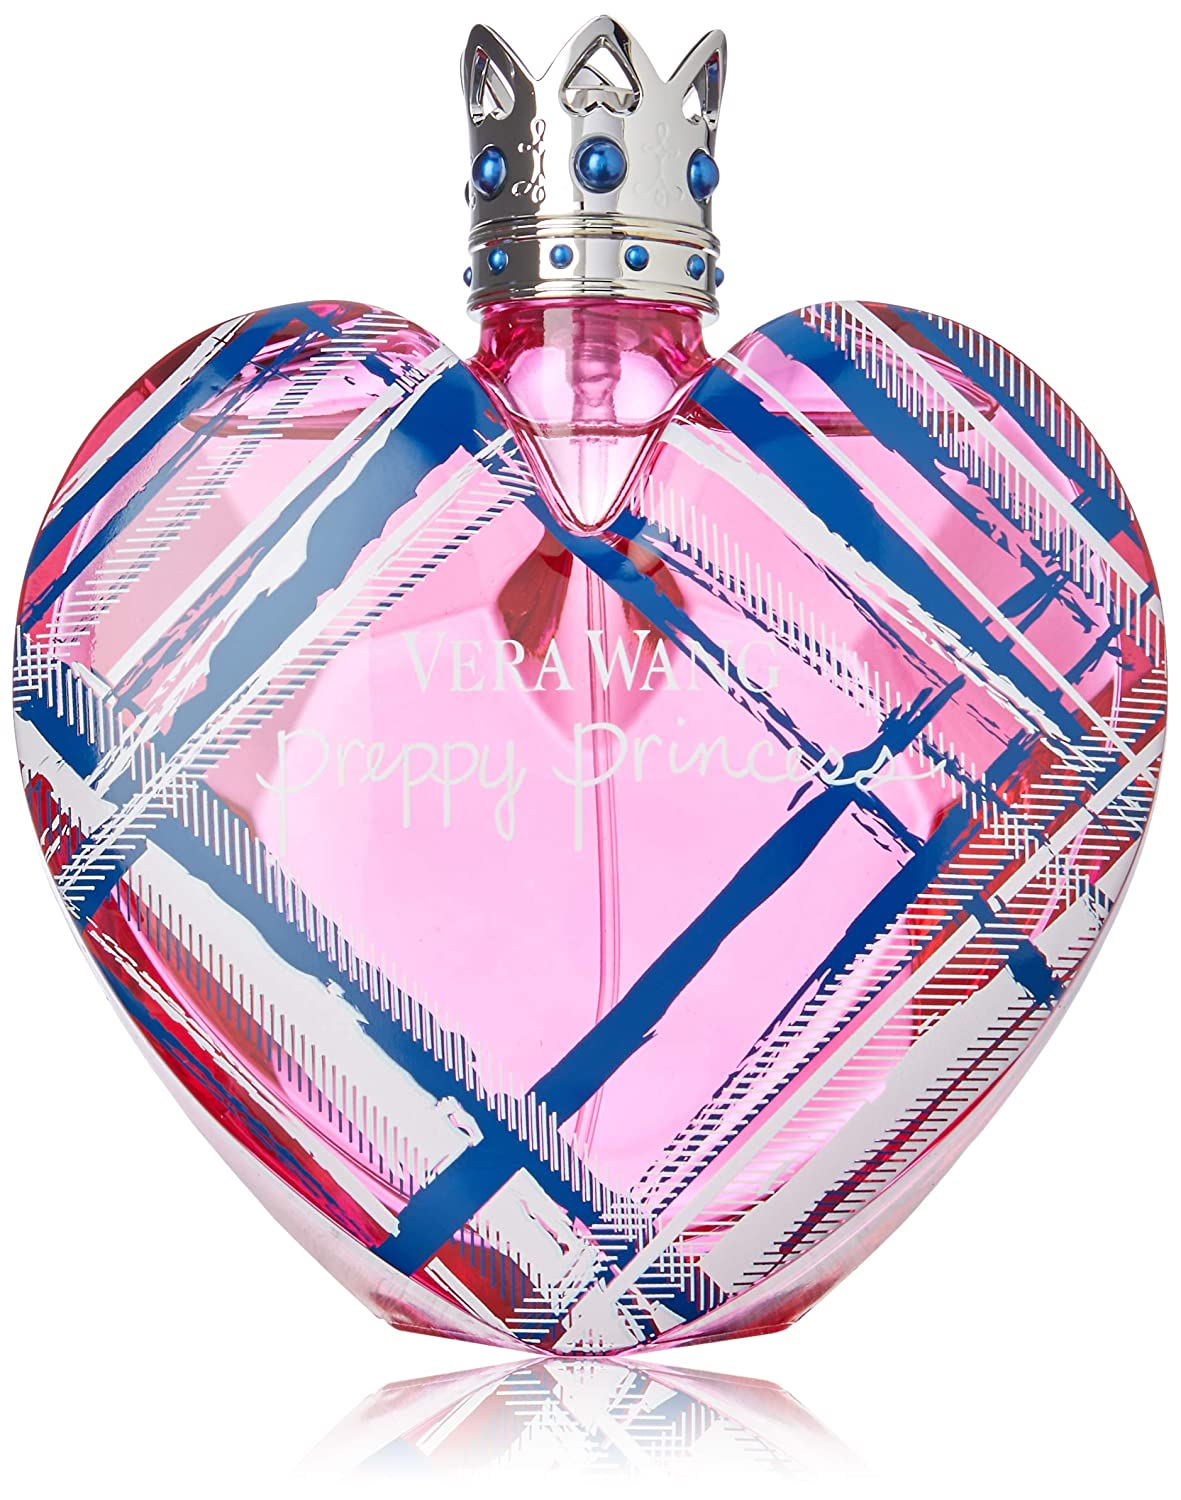 Vera Wang Preppy Princess Eau de Toilette Spray, 1 Ounce